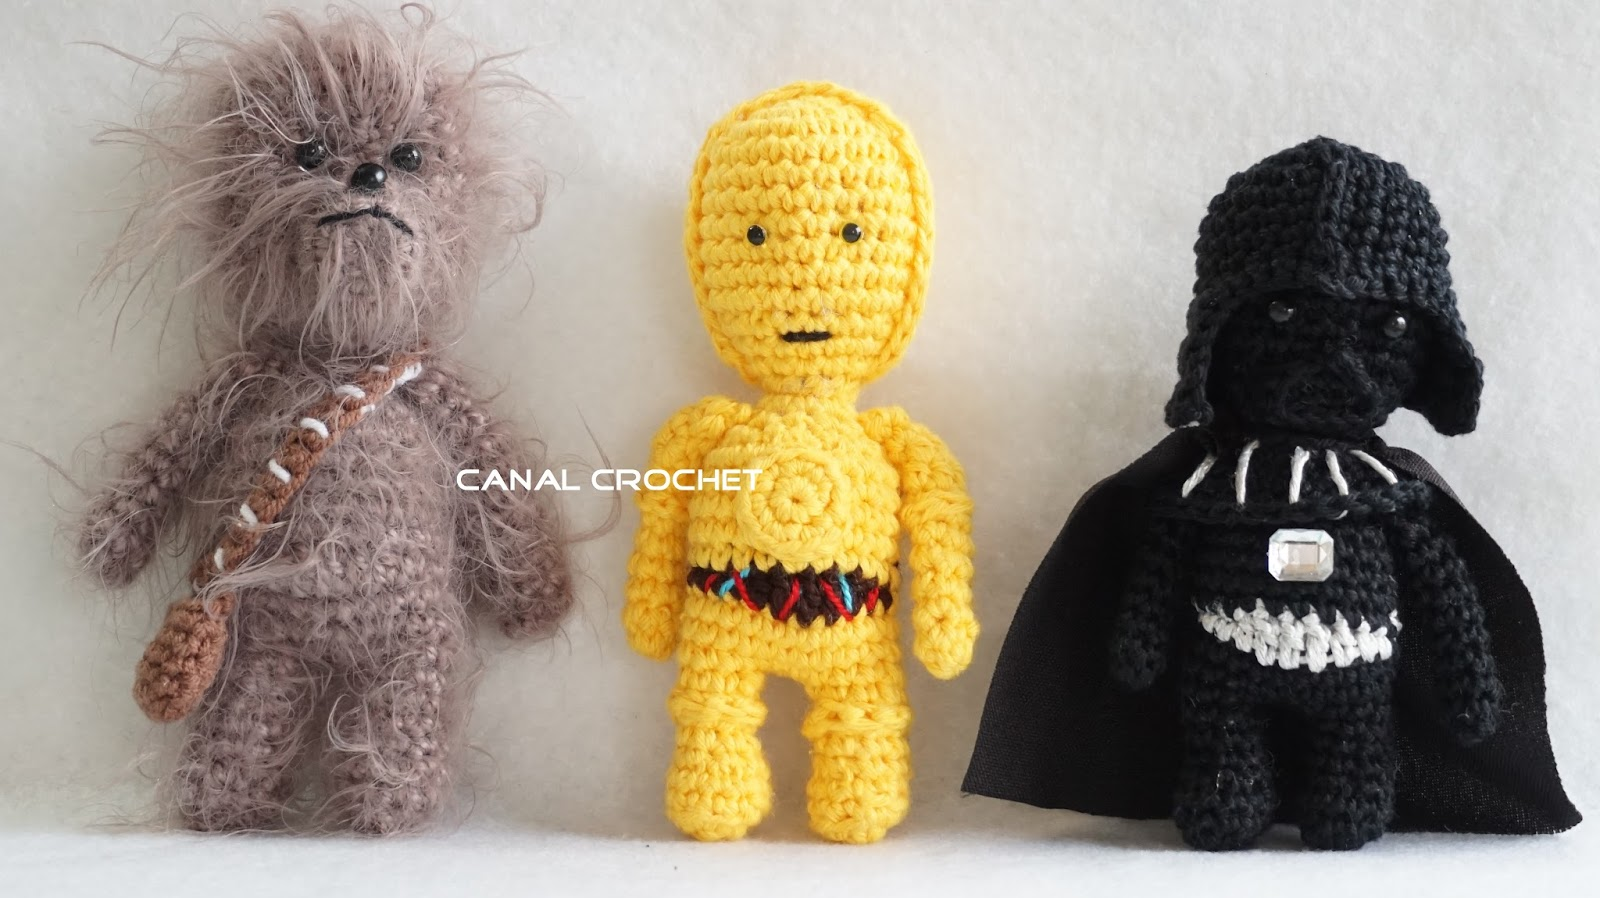 CANAL CROCHET: Star wars amigurumis tutorial 1